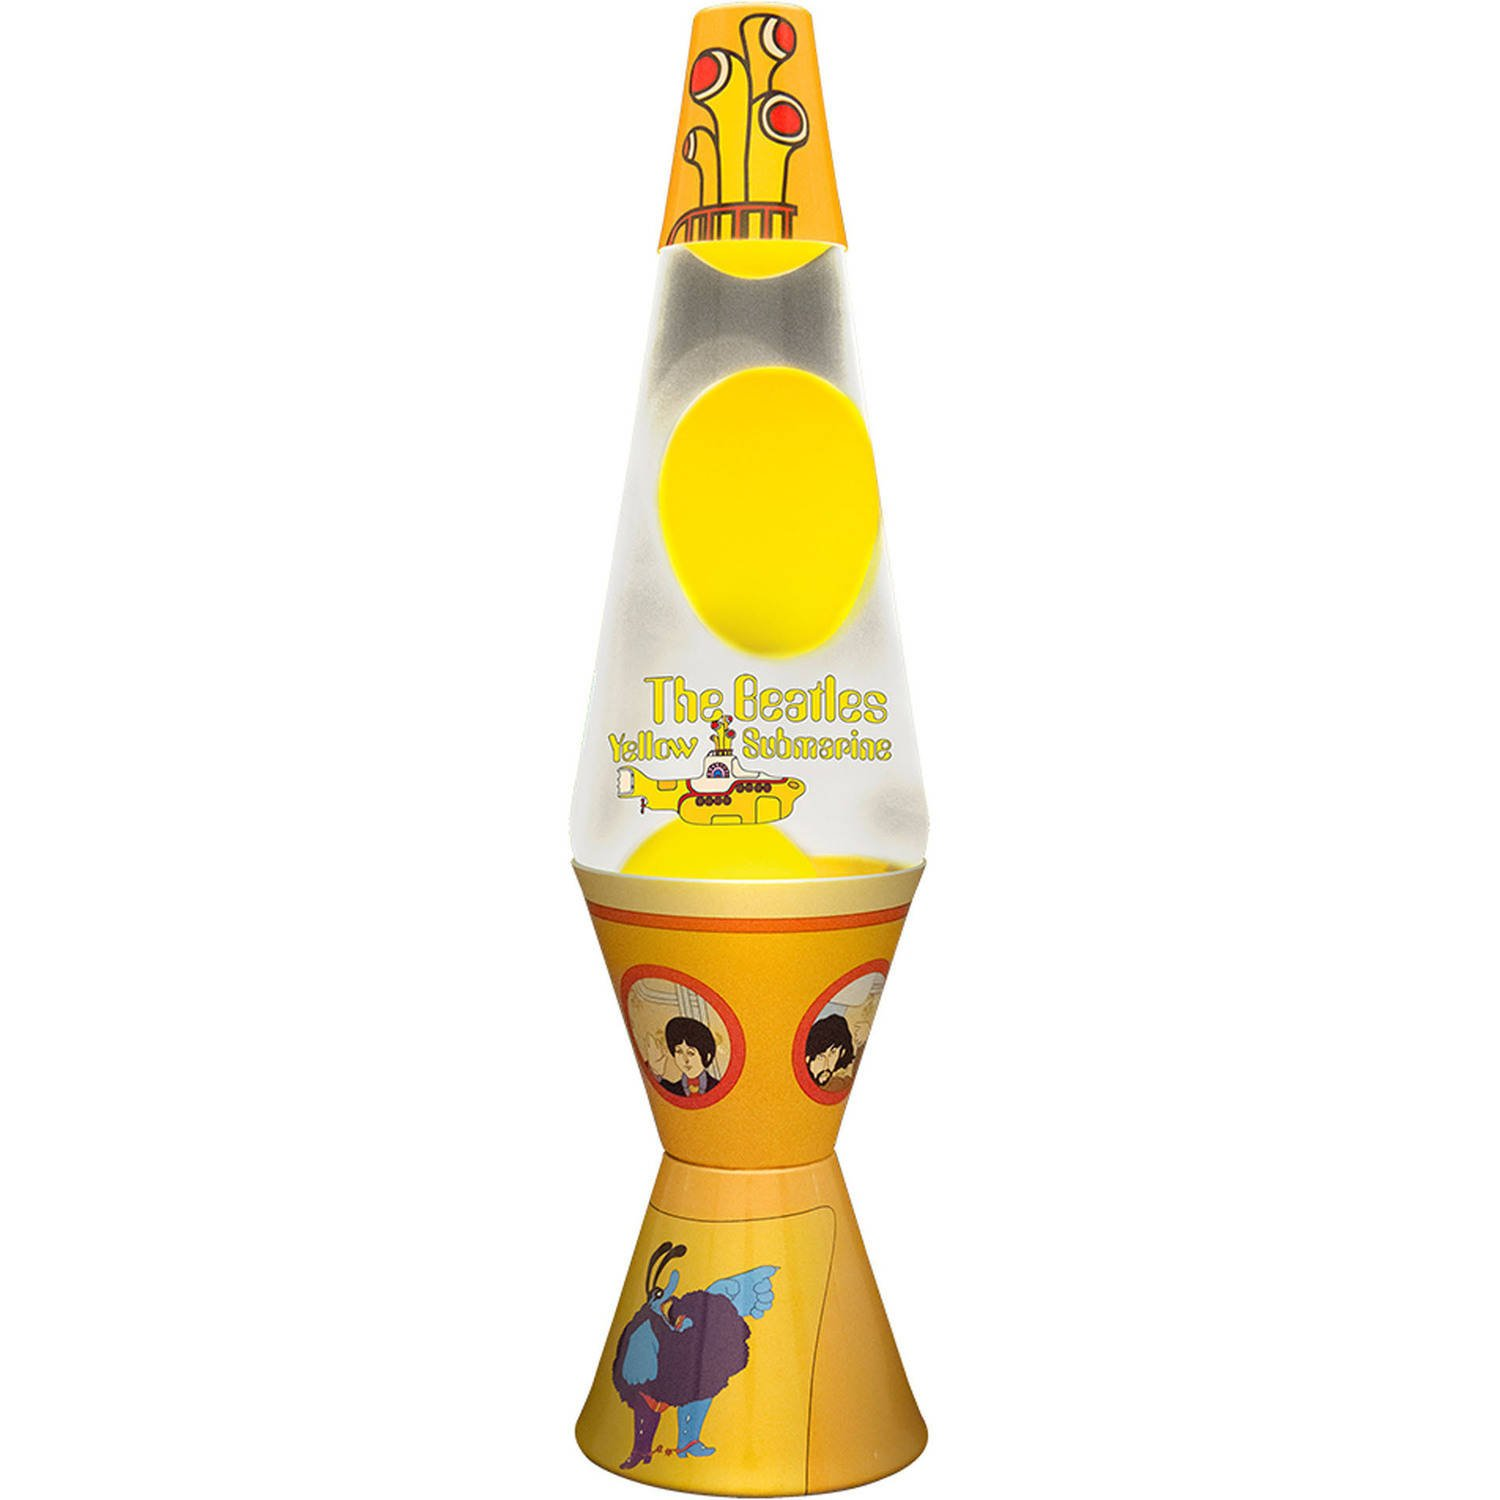 Lava lamp png - The Beatles 14 5 Inch Lava Lamp Yellow Submarine Hand Painted Featuring Album Cover Artwork Amazon Co Uk Lighting